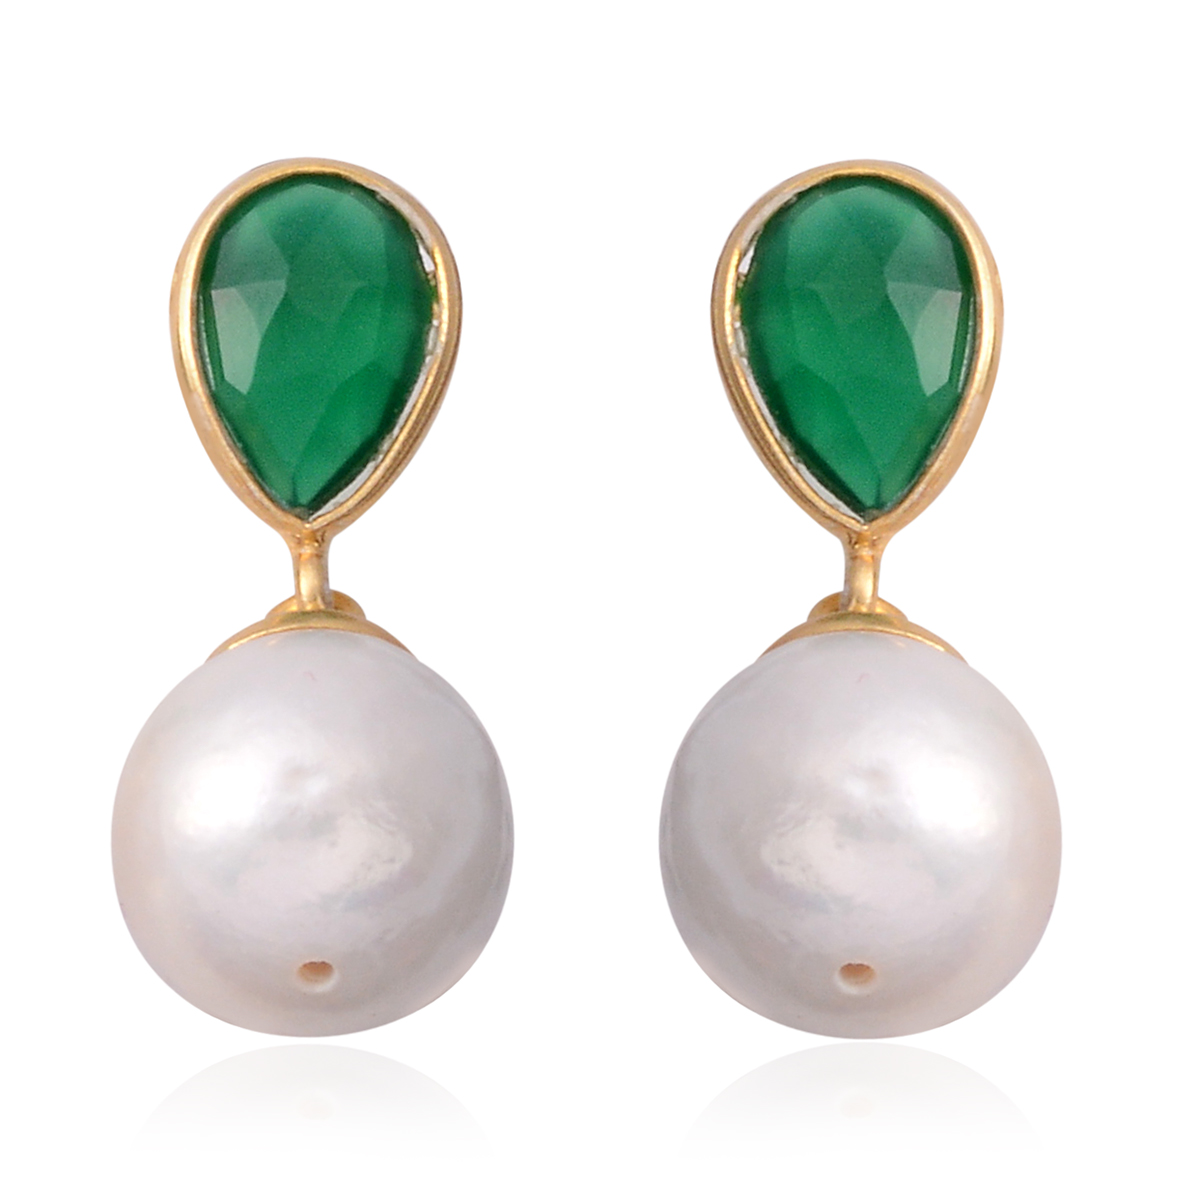 Exquisite Freshwater Pearl & Green Onyx 14K YG Over Sterling Silver Earrings TGW 0.50 cts. - Houzz of DVA Boutique